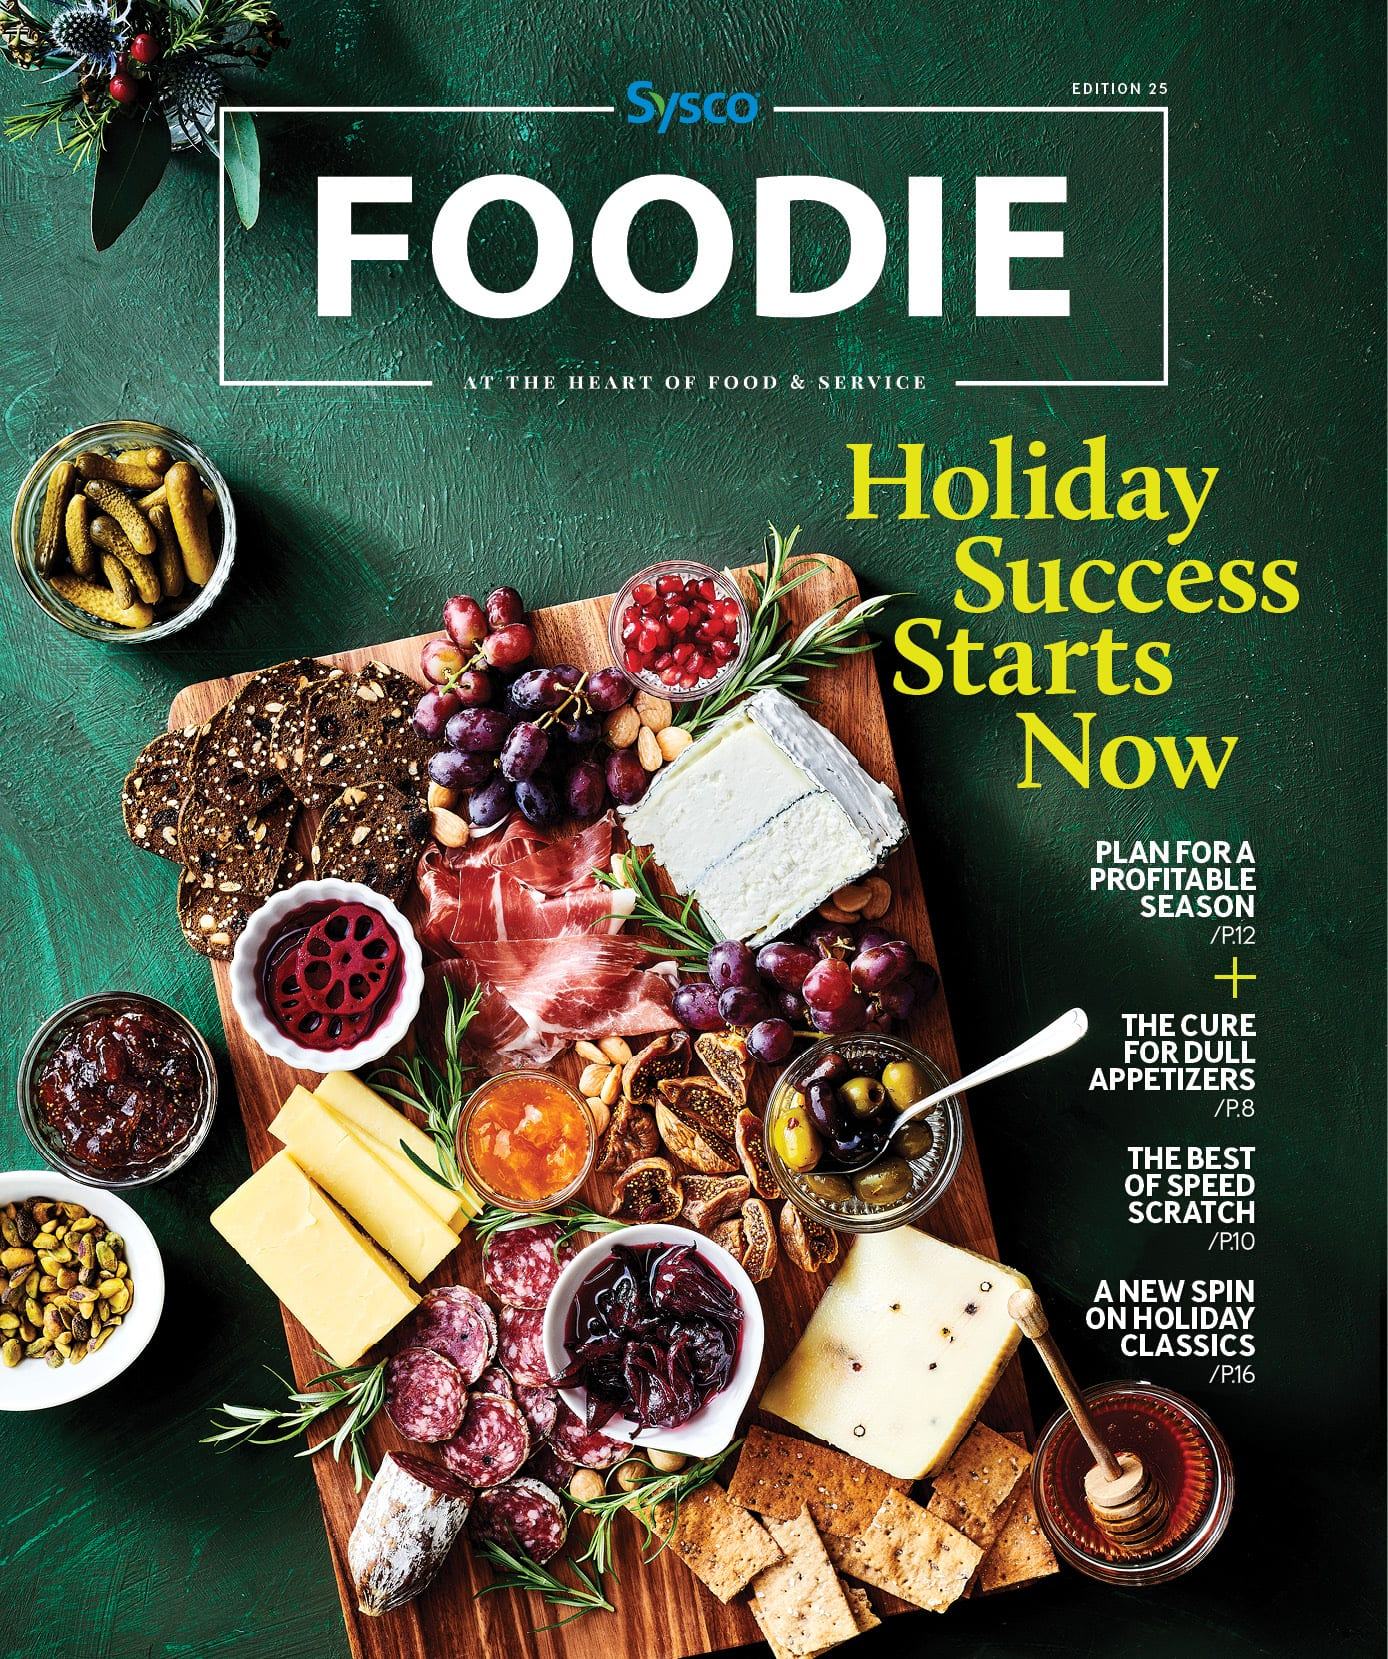 Sysco Foodie July 2019 issue